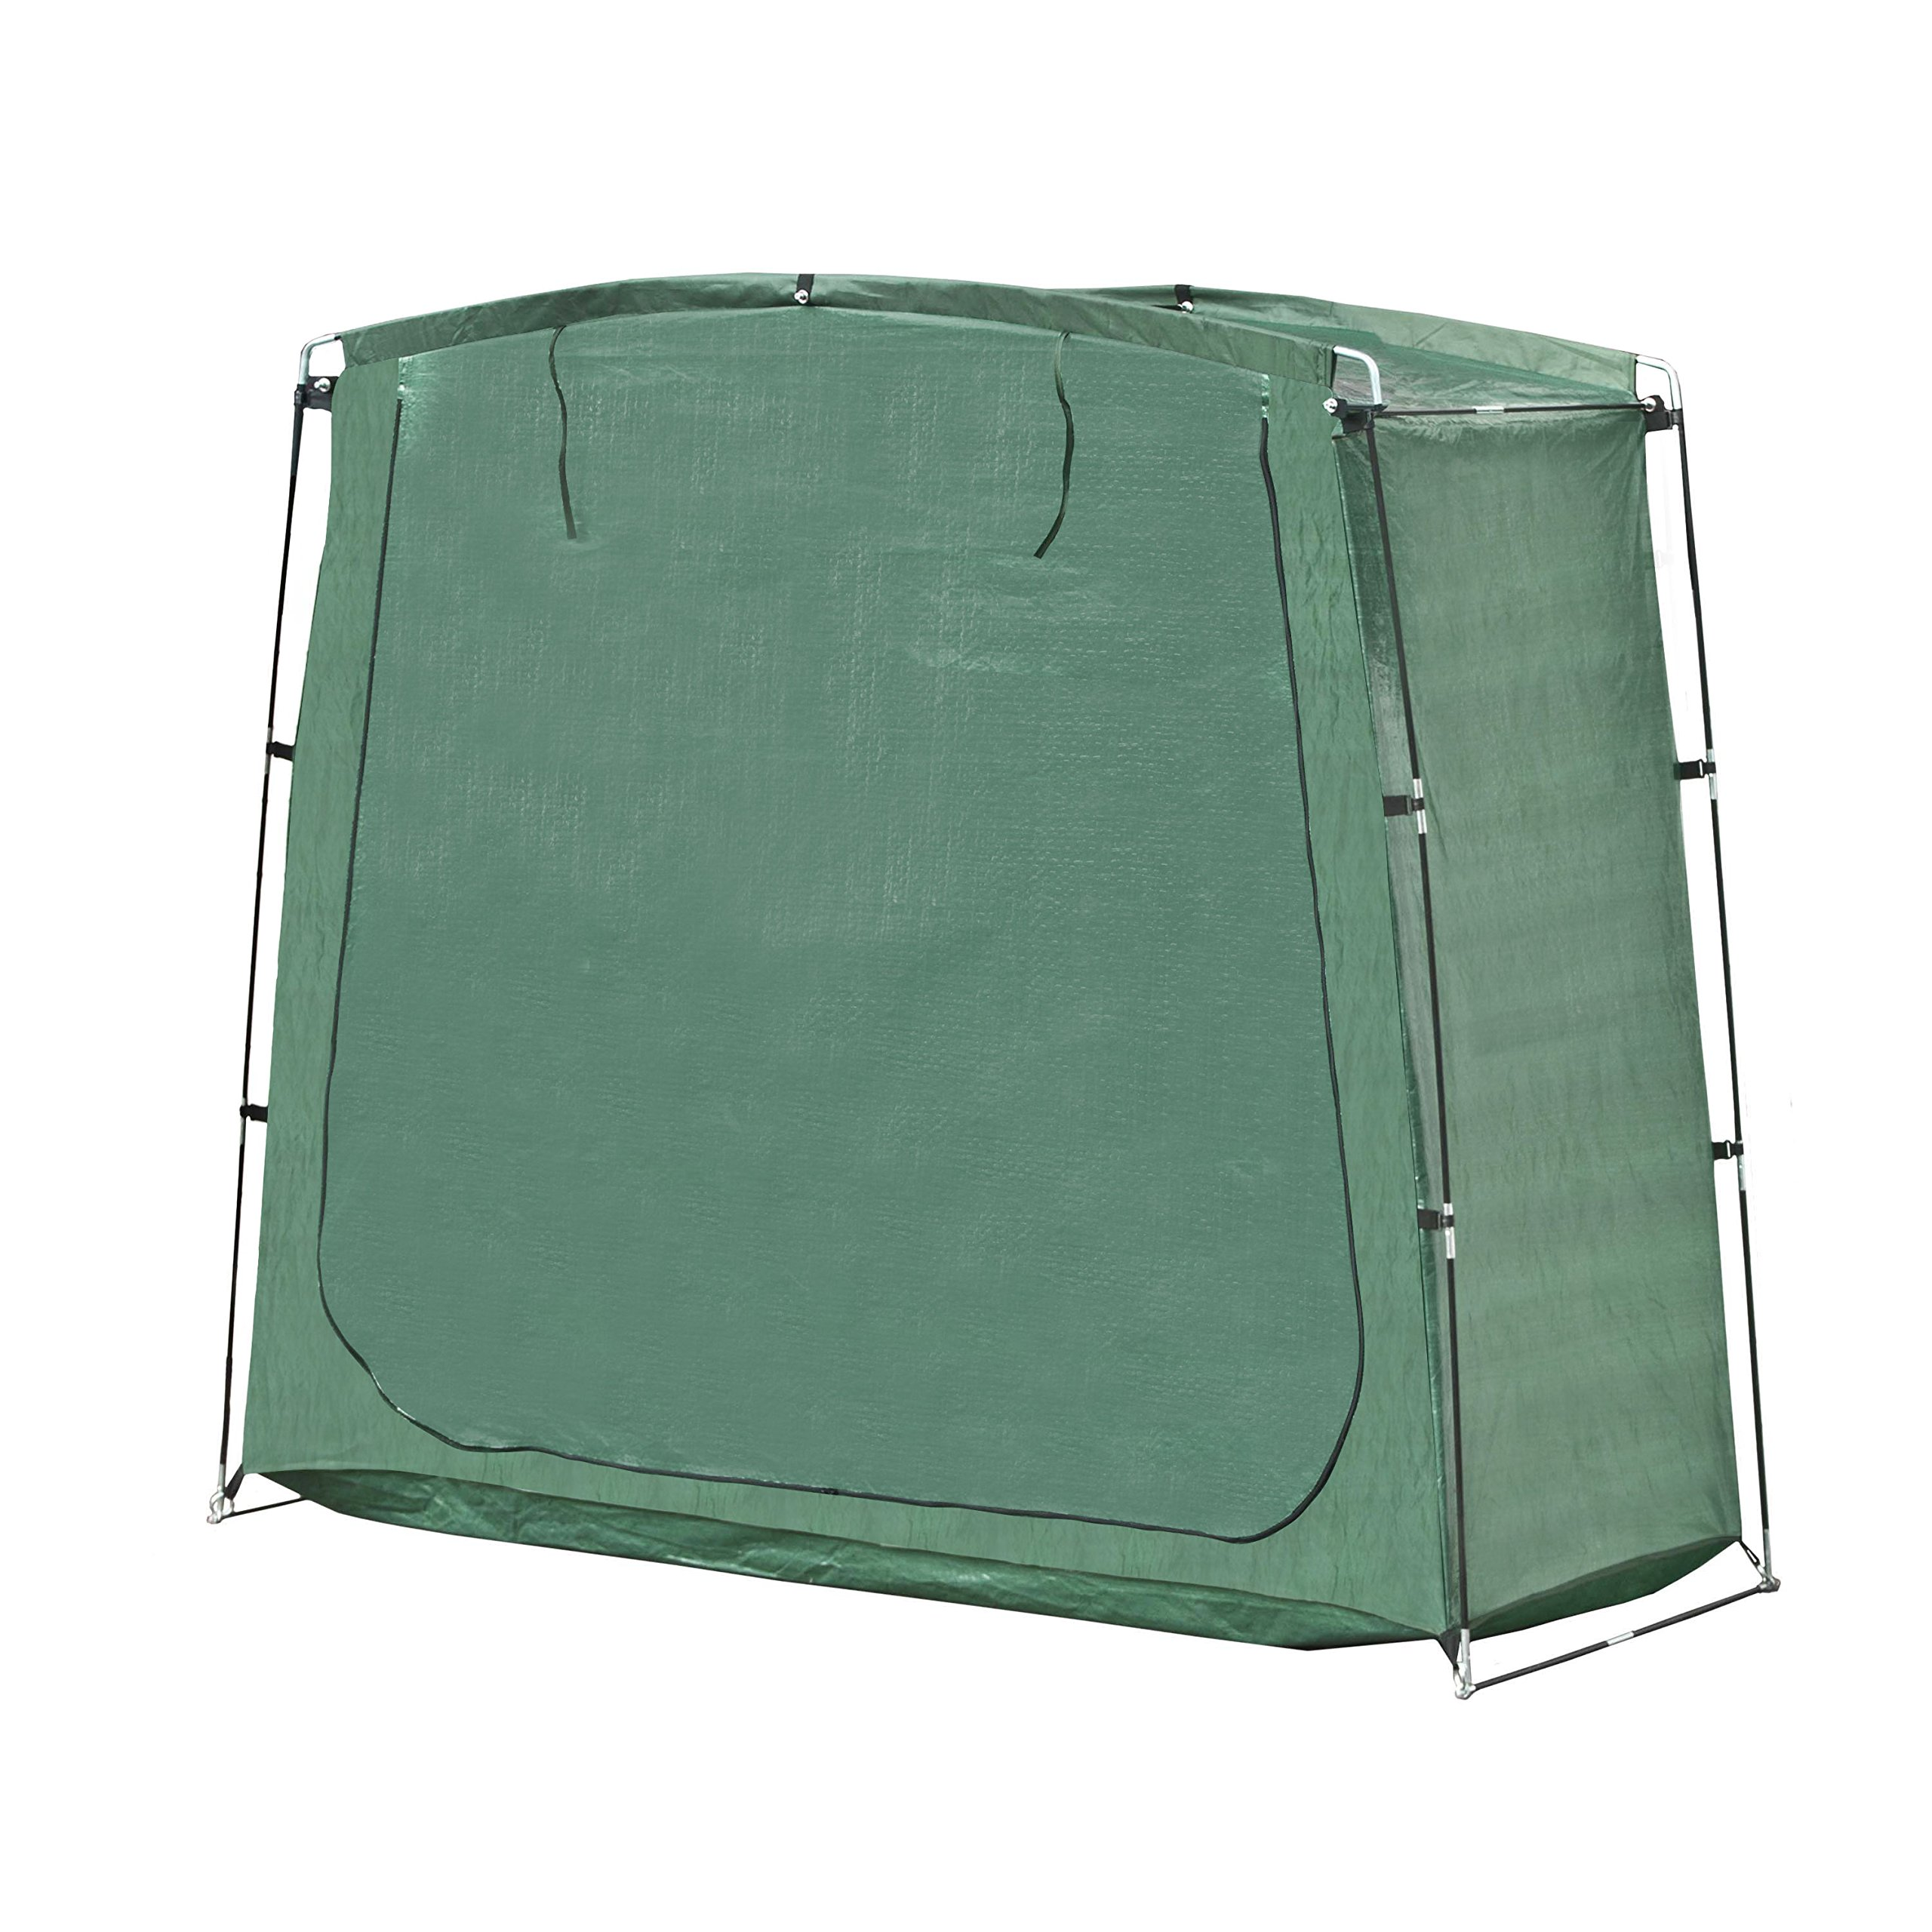 ALEKO SS70GR Portable Pop Up Bike Tent Bicycle Storage Shed Weather Resistant Protection Outdoor with Carrying Case 70 X 64 X 30 Inches Green